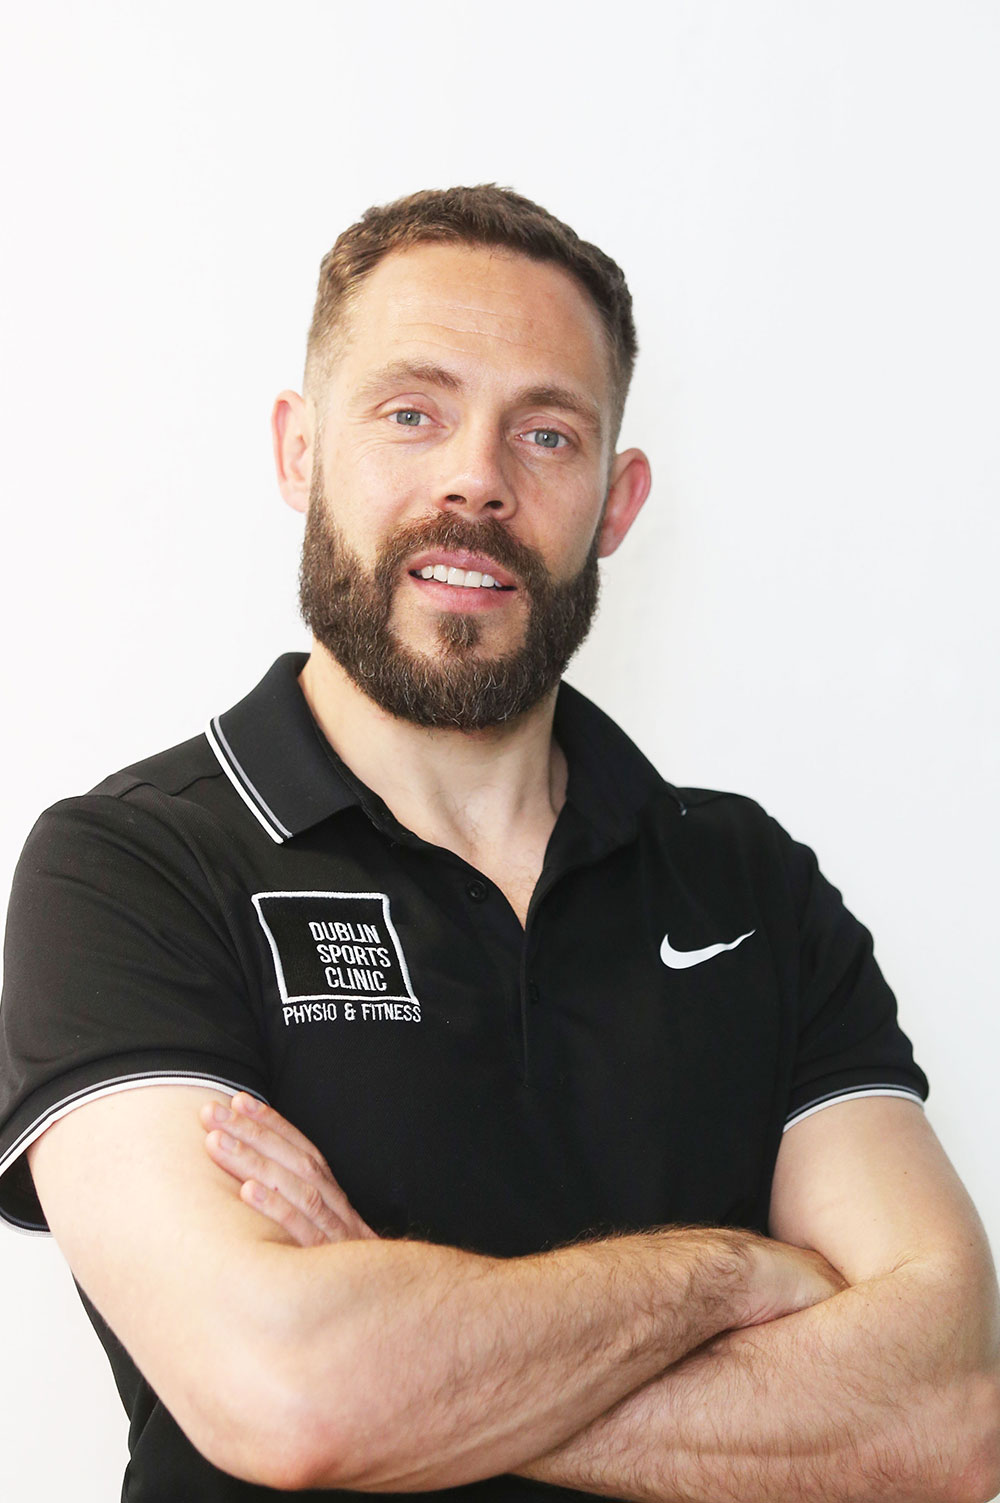 Paul Oppermann Director of Dublin Sports Clinic